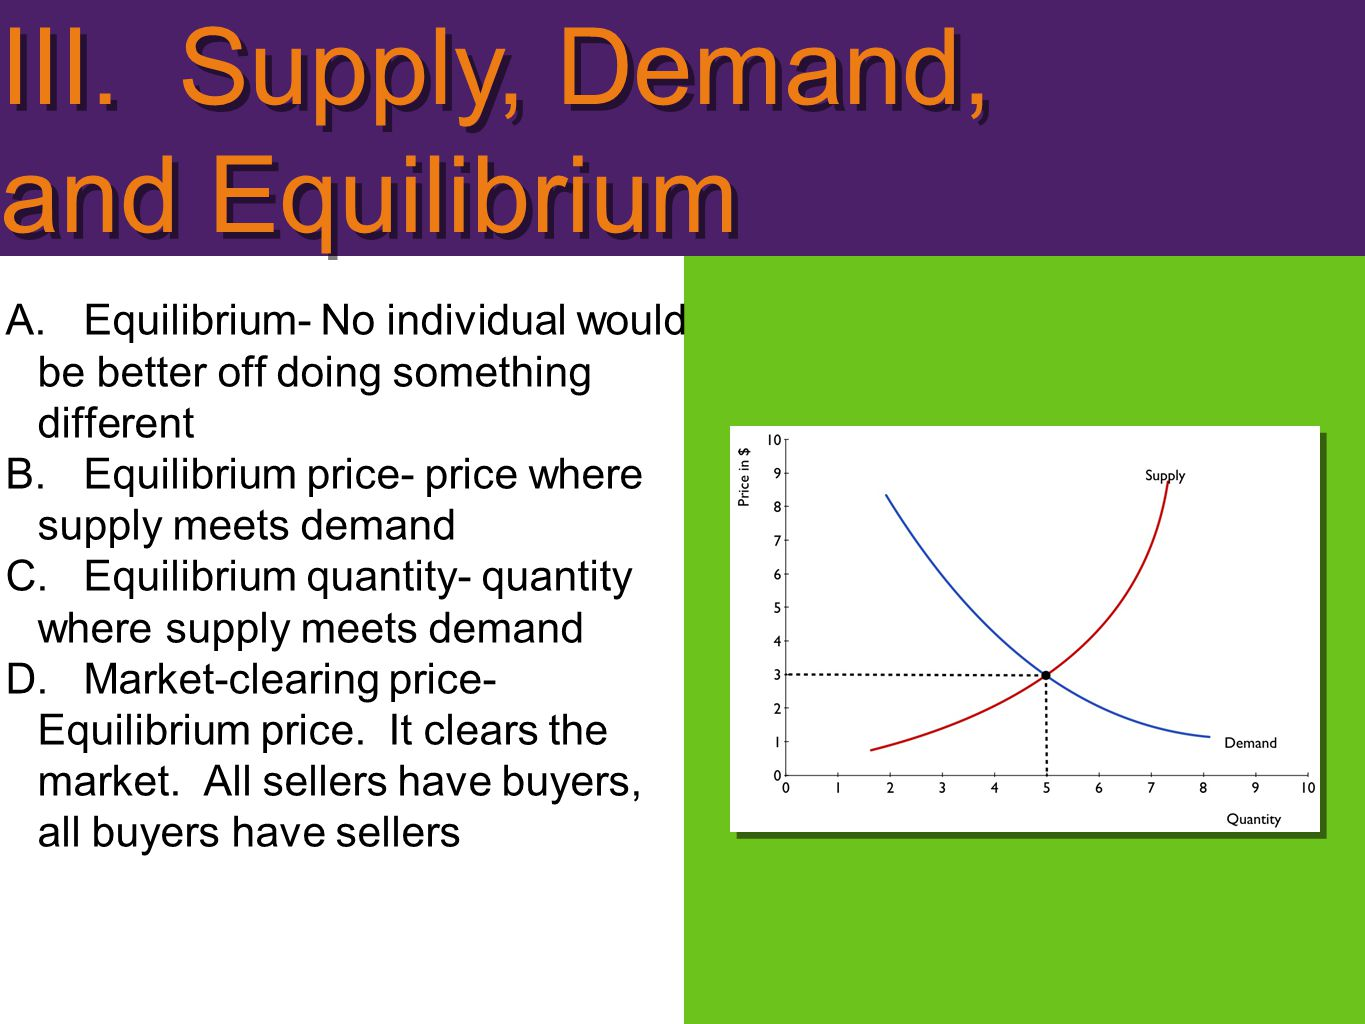 III. Supply, Demand, and Equilibrium